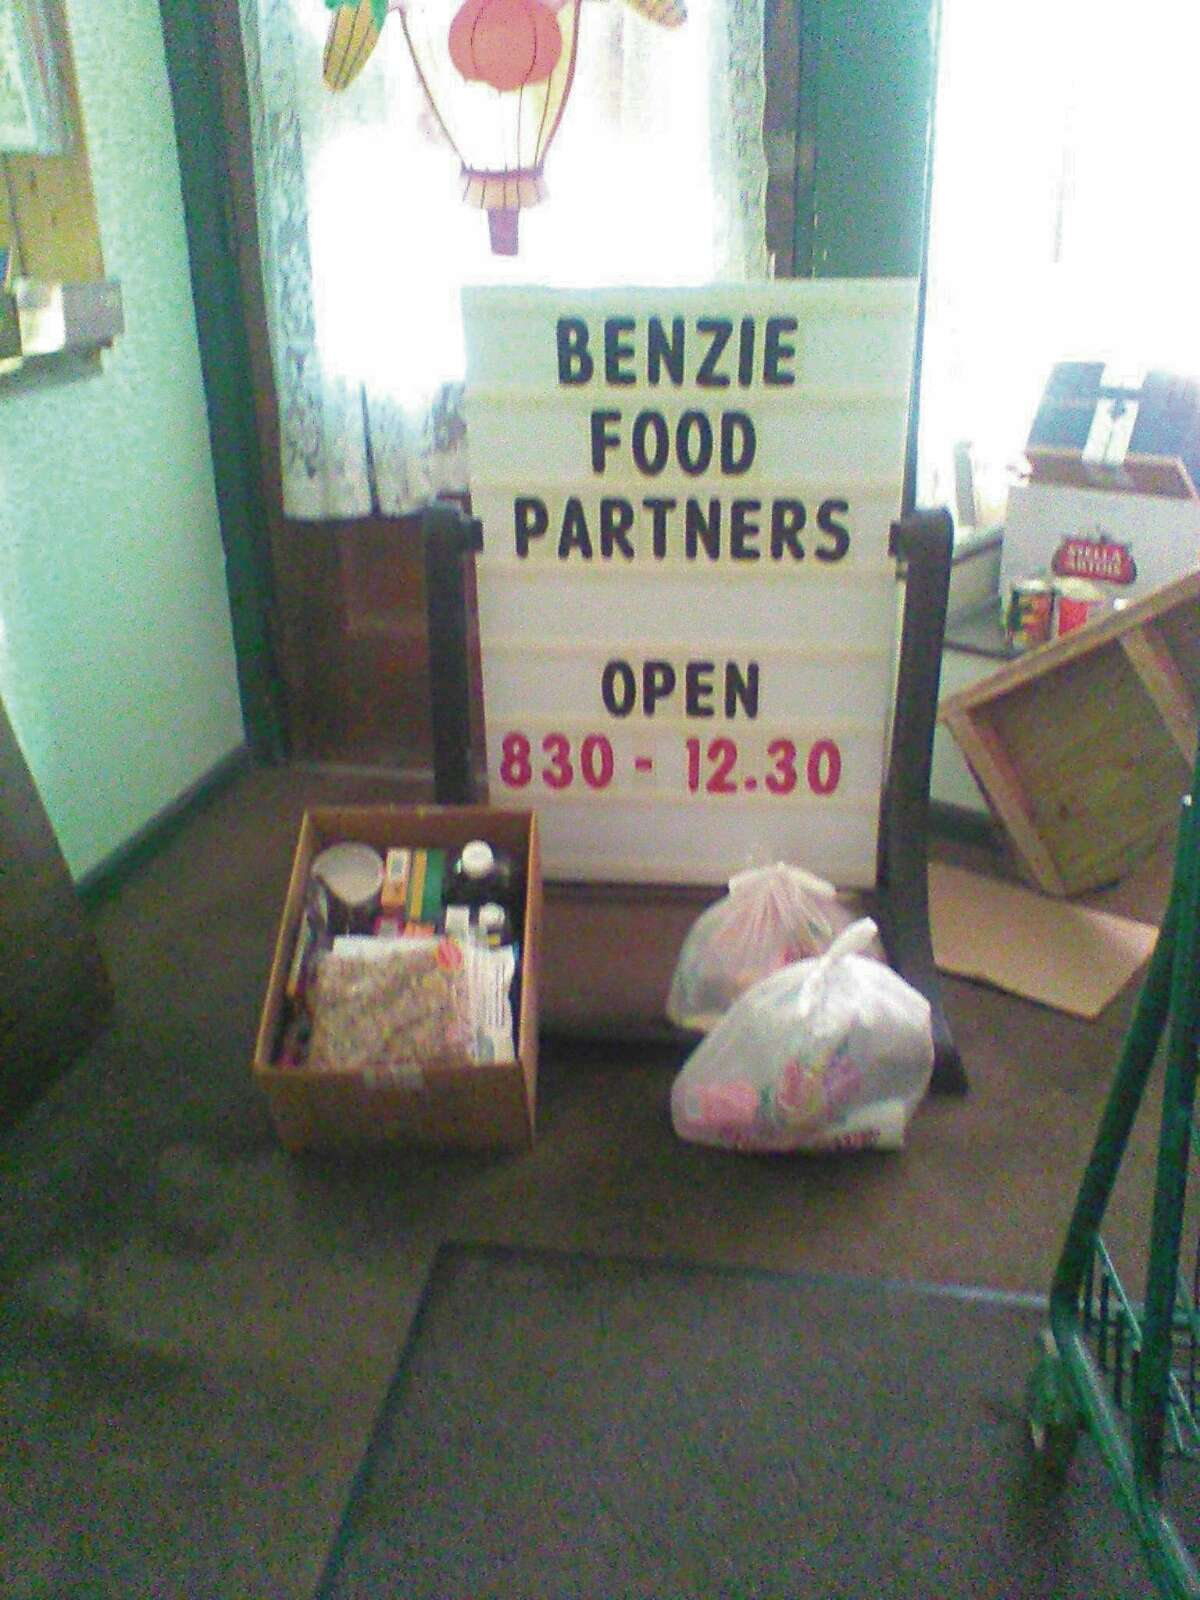 The Benzie Food Partners have continued to keep volunteers and guests safe while feeding neighbors in Benzie. (Courtesy Photo)